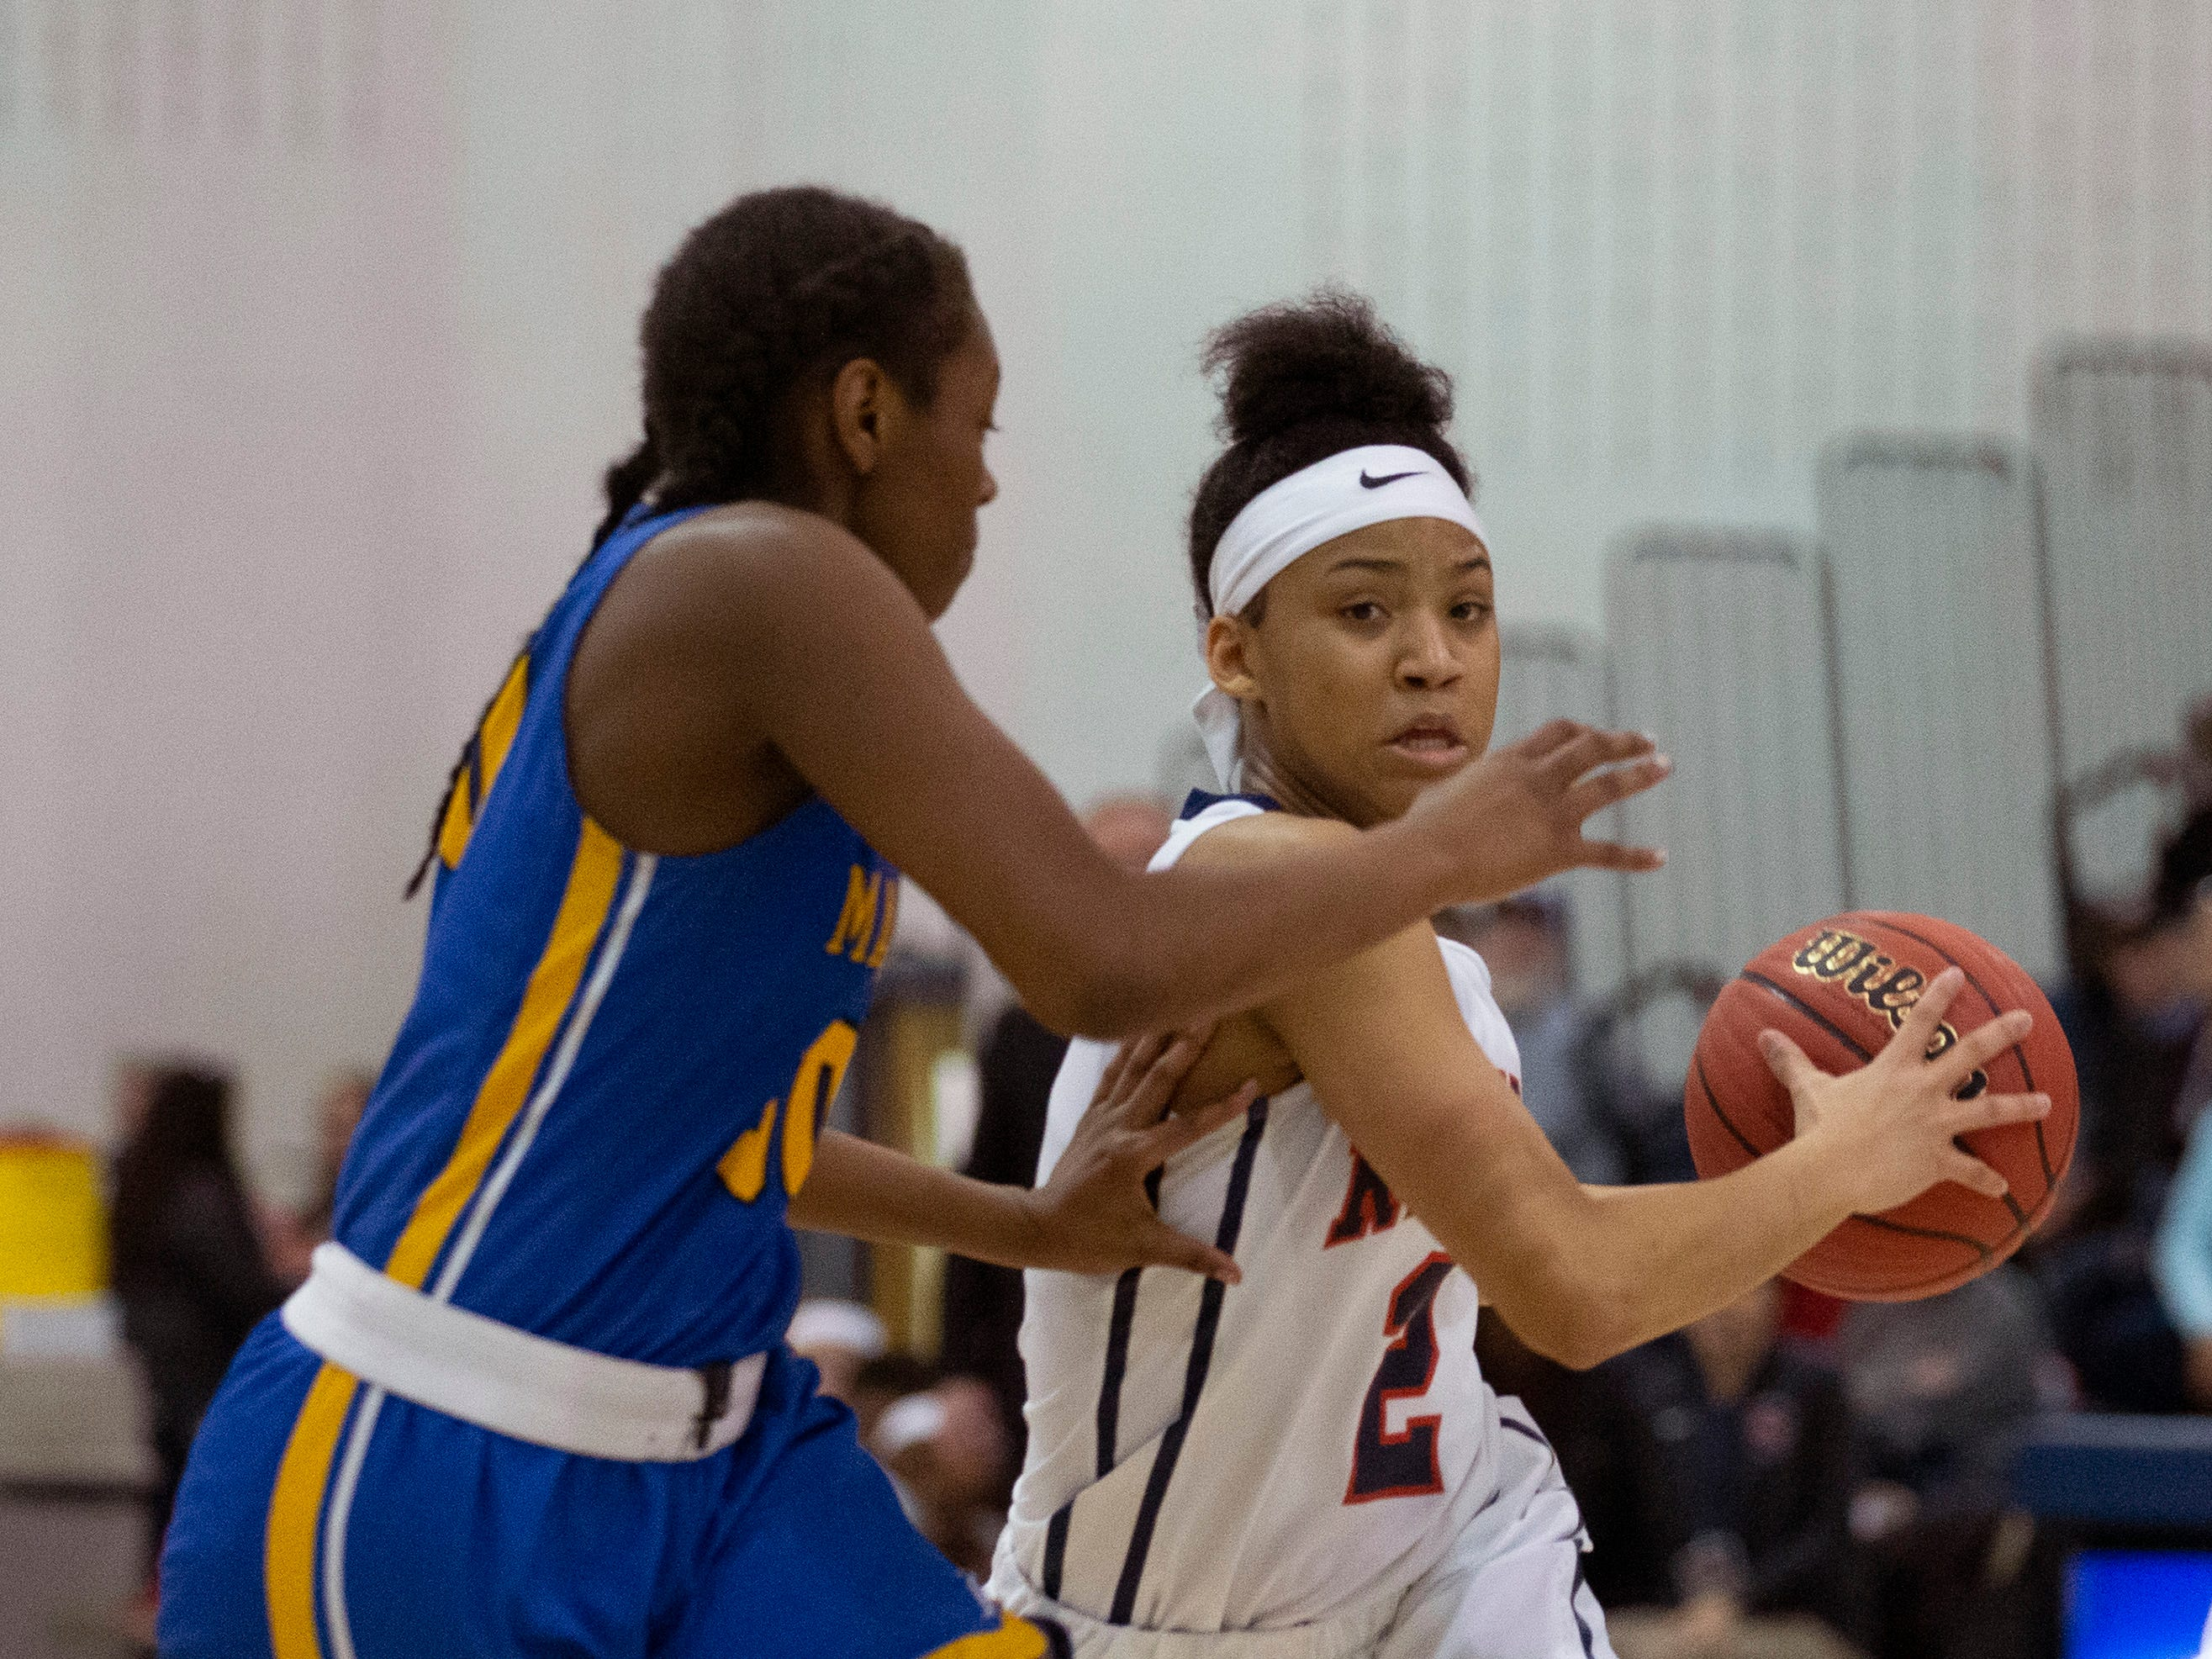 Saddle River Day's Saniah Caldwell works in under the basket. Manchester Girls Basketball vs Saddle River Day in NJSIAA Tournament of Champions Semifinal in Toms River on March 14, 2019.